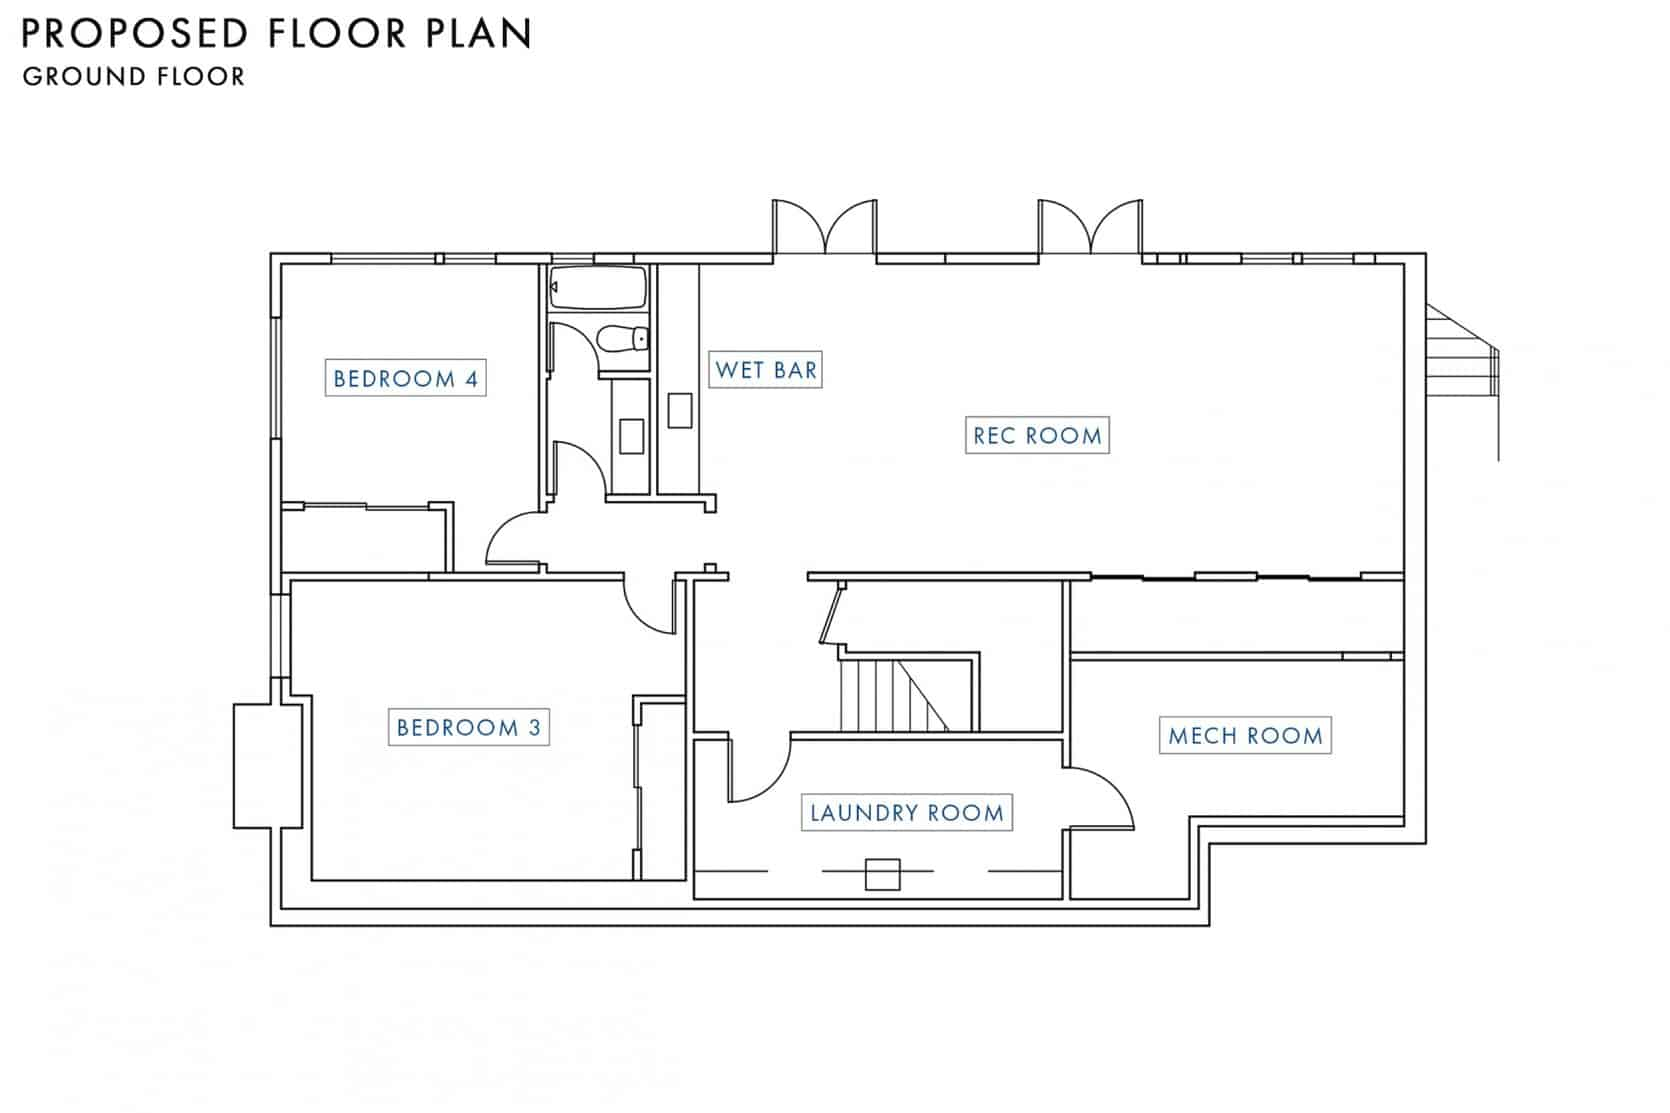 Proposed Floor Plan Ground Floor